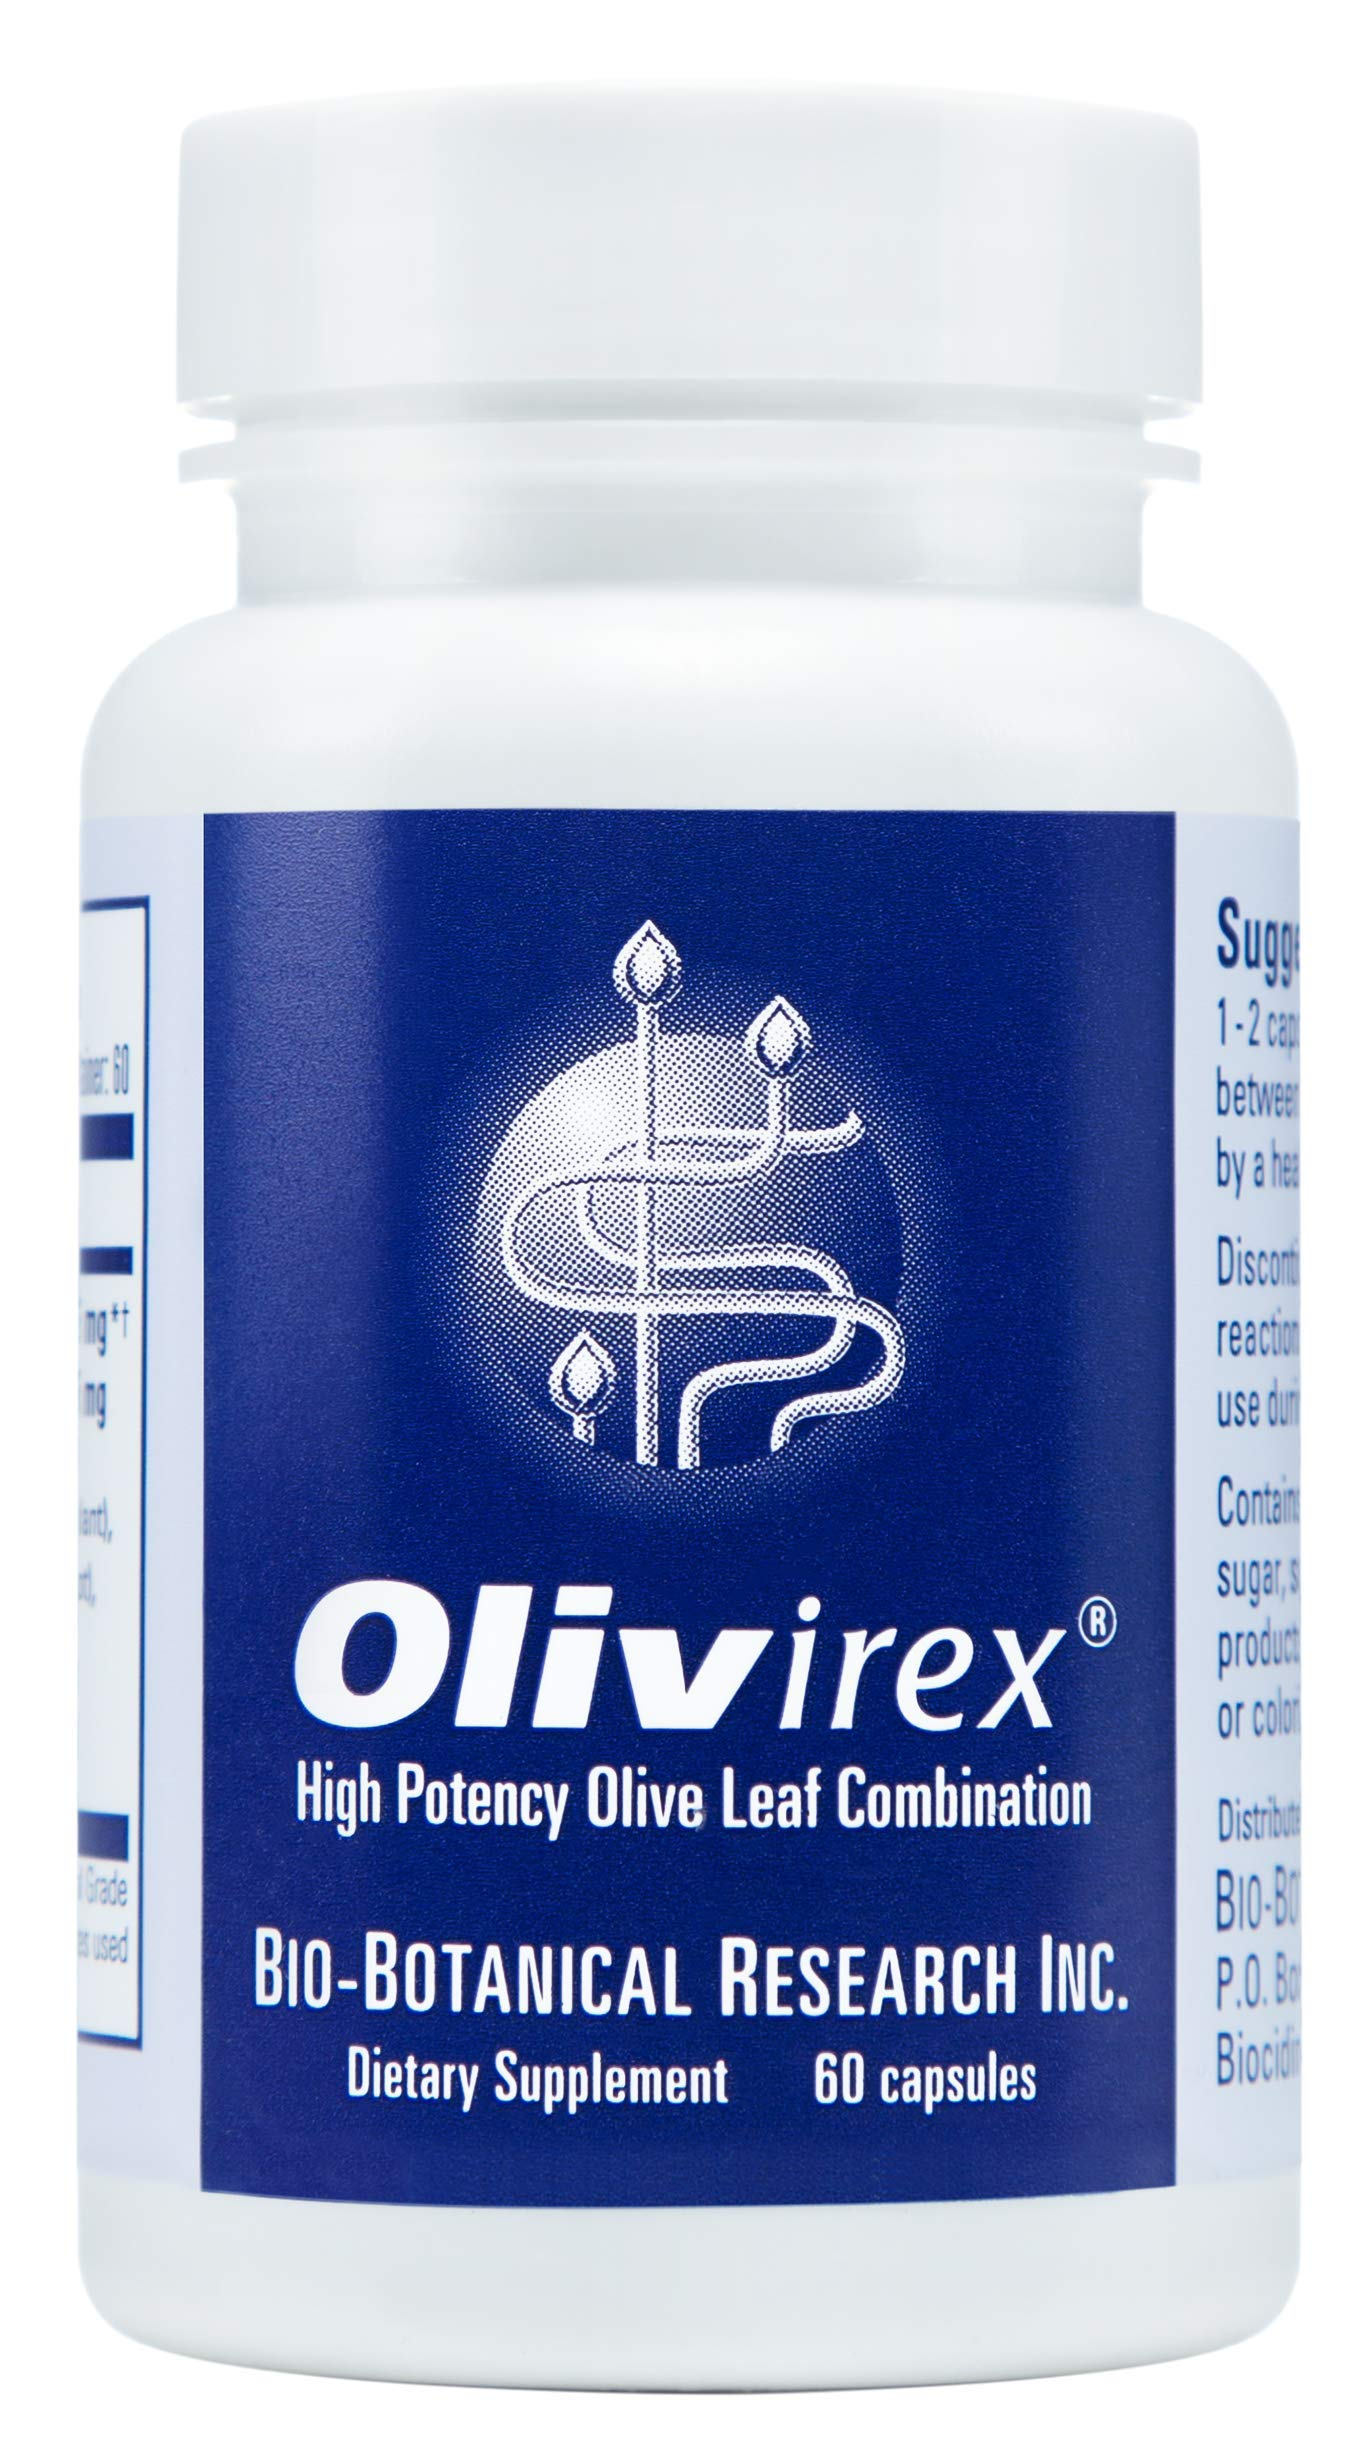 Olivirex High Potency Olive Leaf Combination by Biocidin - Olive Leaf Extract with Adaptogens & Herbs to Support Detox - Immune Support Supplement (60 Capsules)